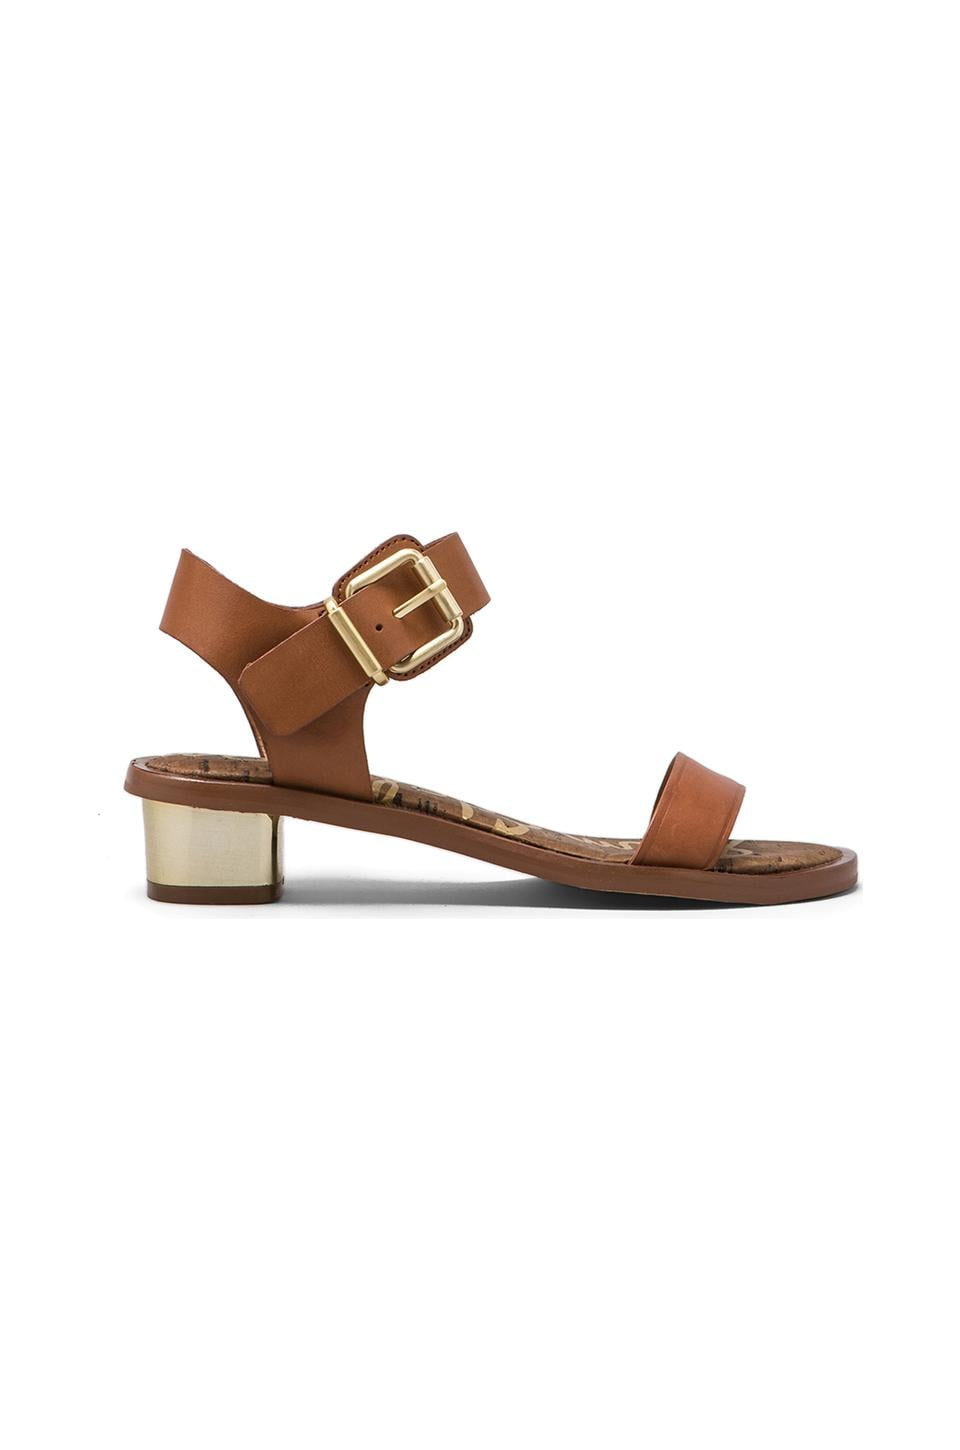 Sam Edelman Trina Sandal in Whiskey